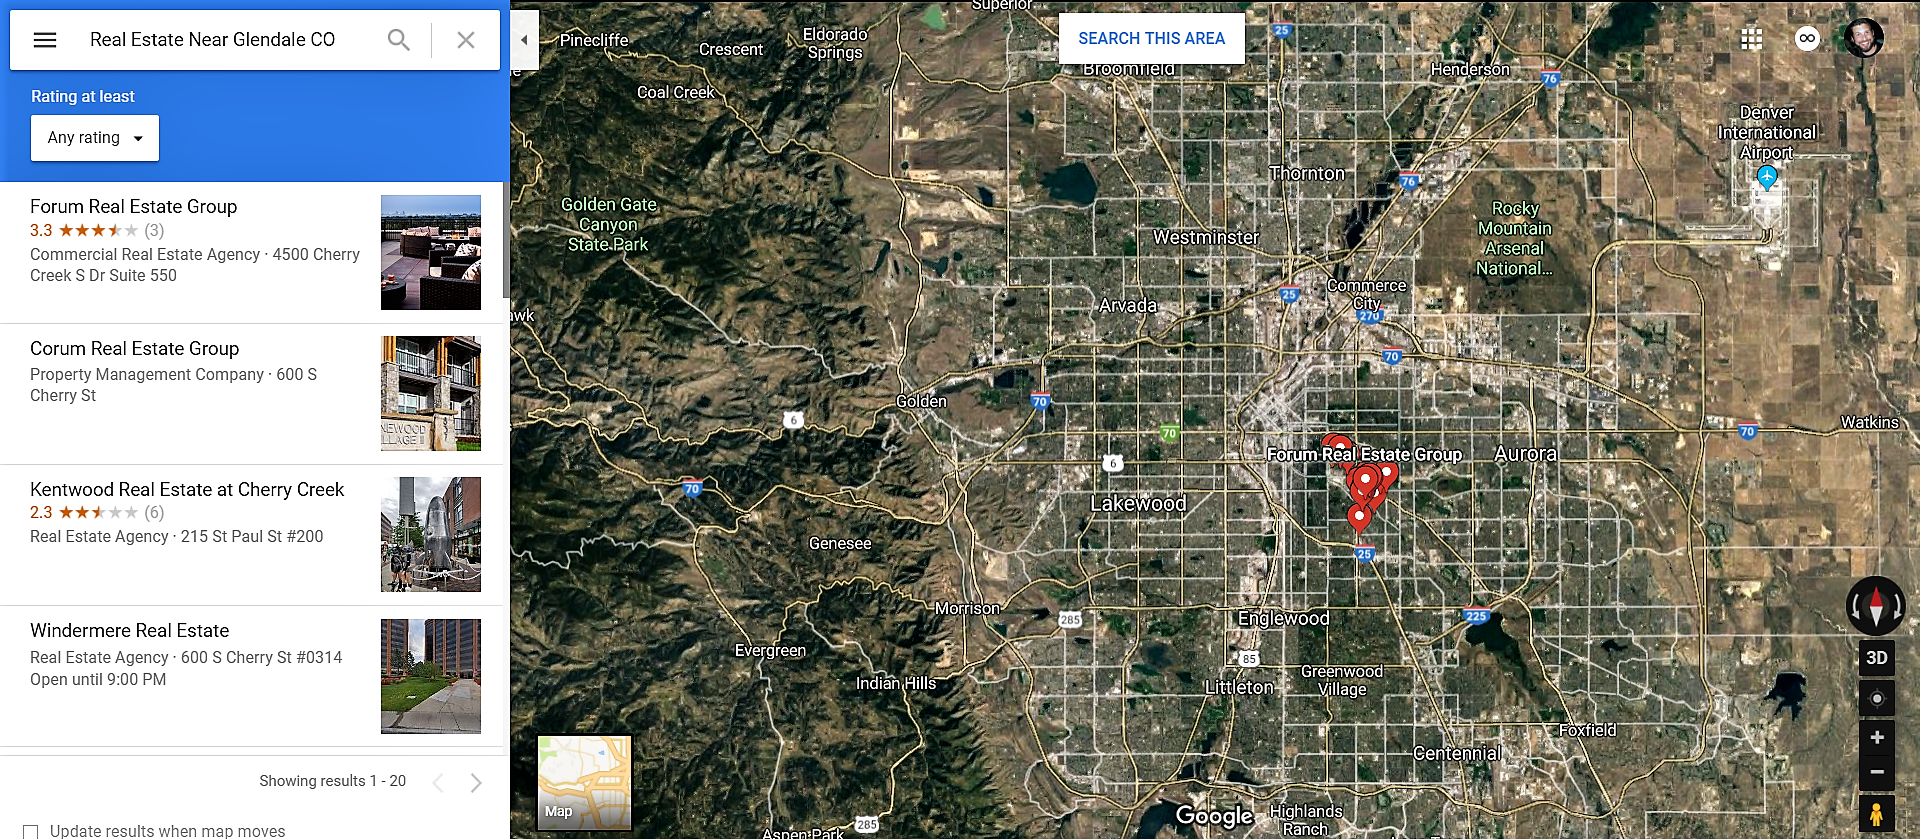 Glendale Colorado Google Maps Real Estate Realtors and Mortgage Loans